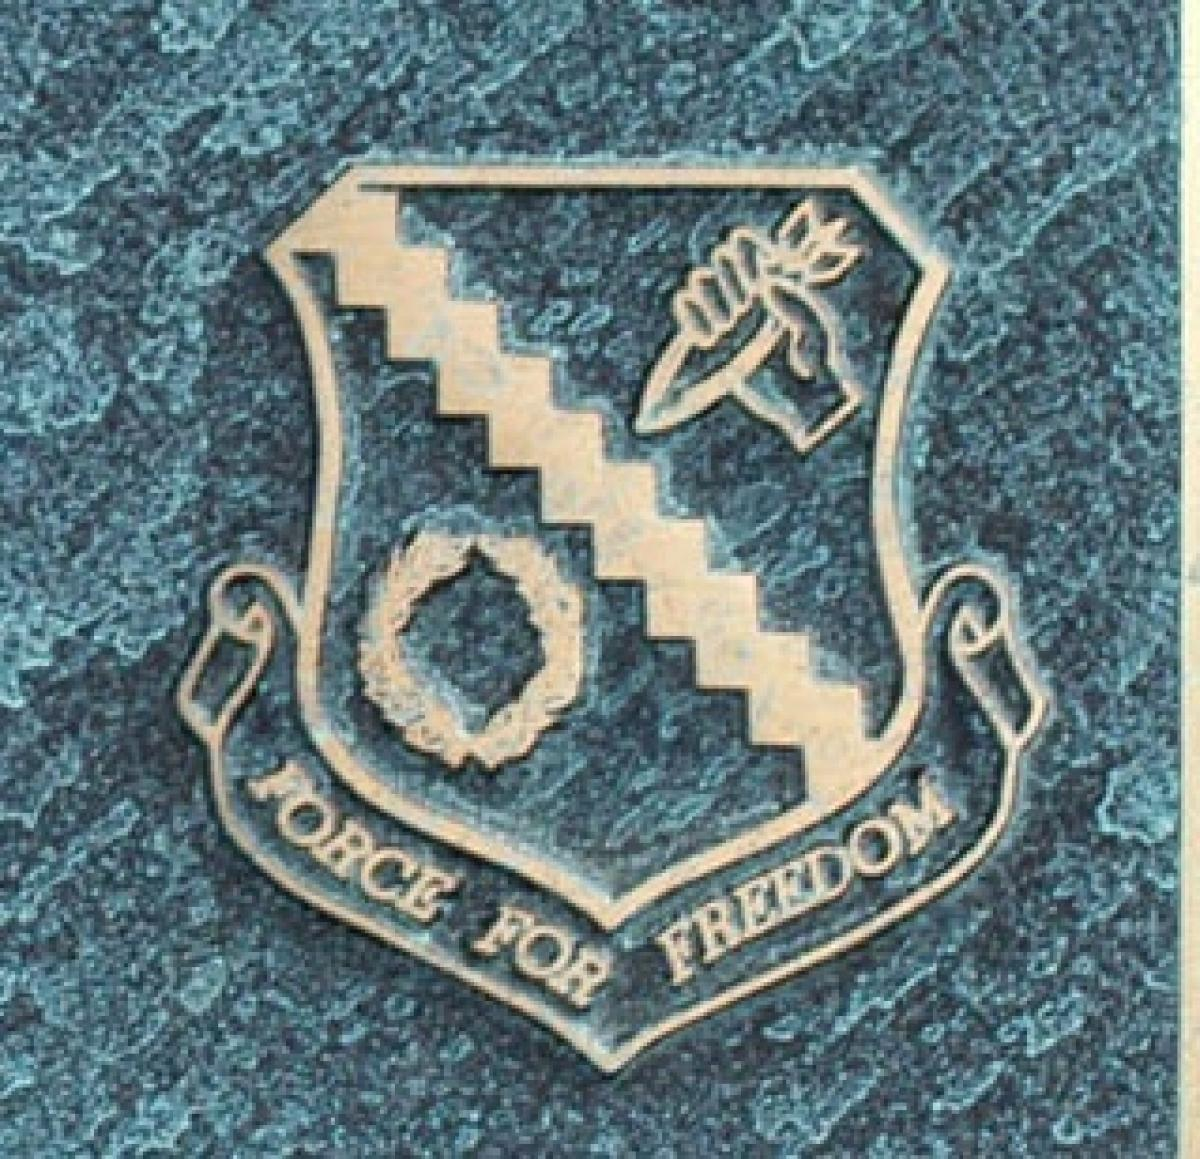 OK Grove Headstone Symbols And Meanings U S Air Force 98th Bomb Group